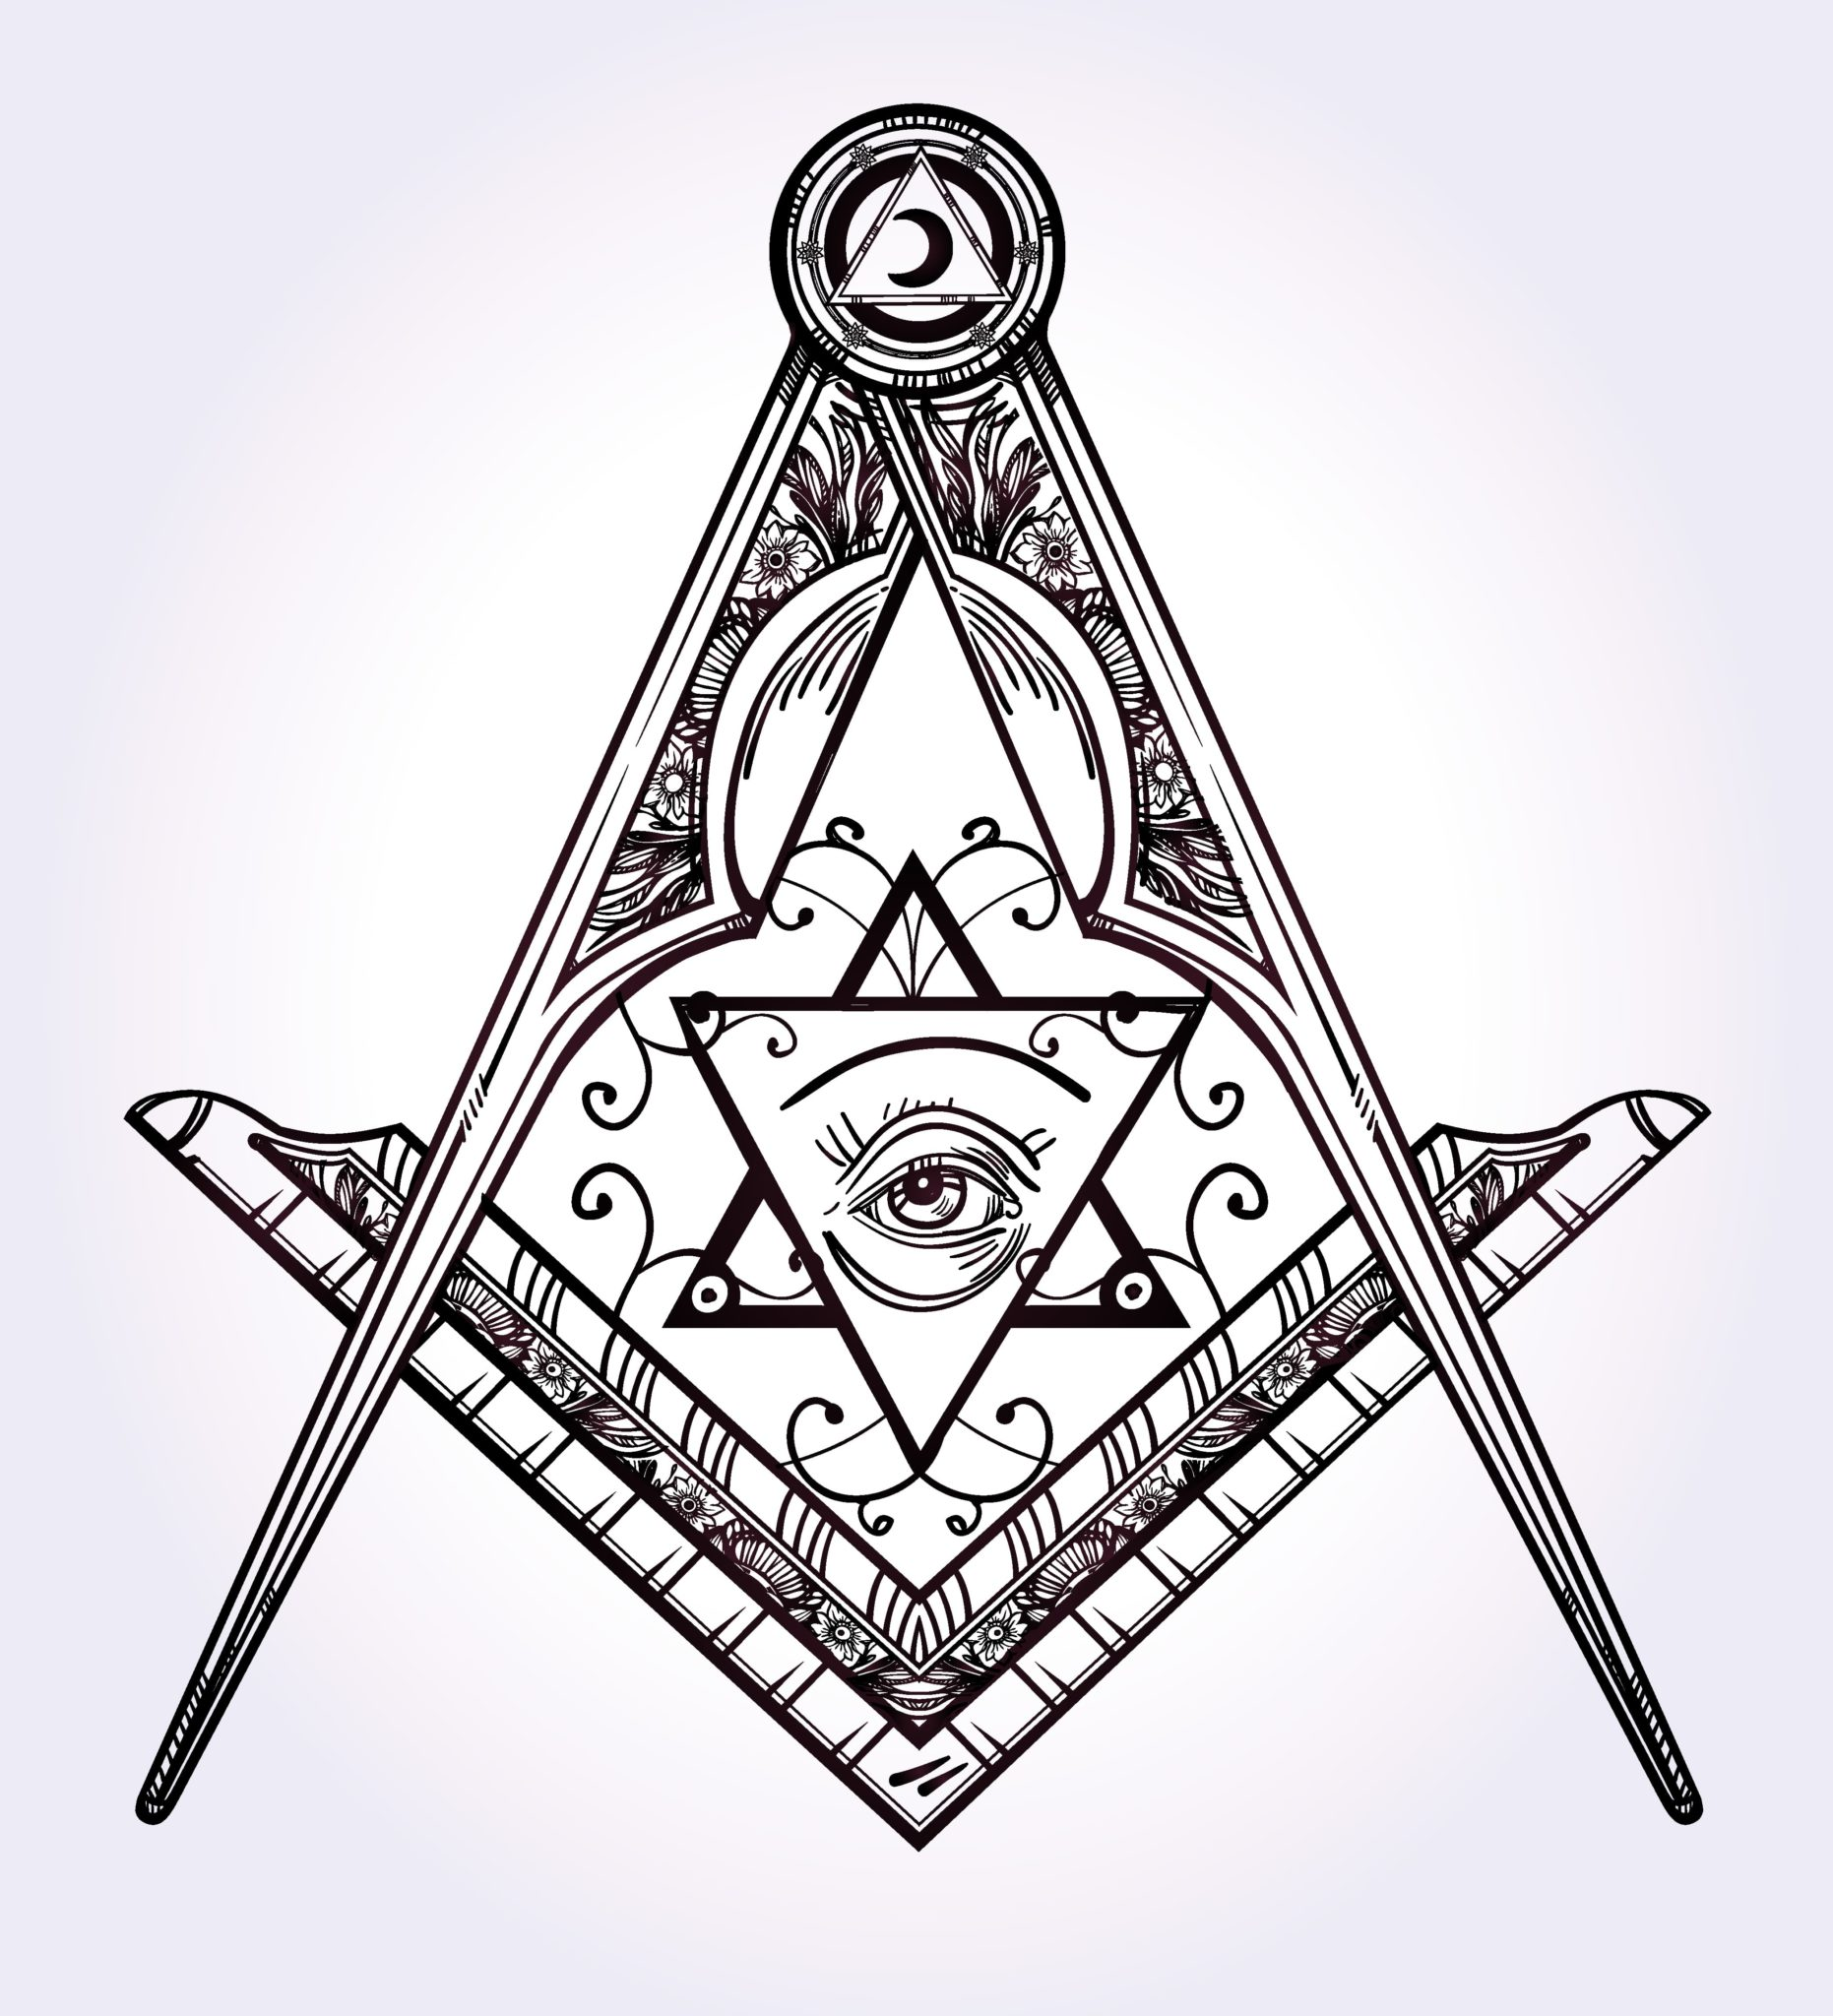 The Freemasons. Not Illuminati